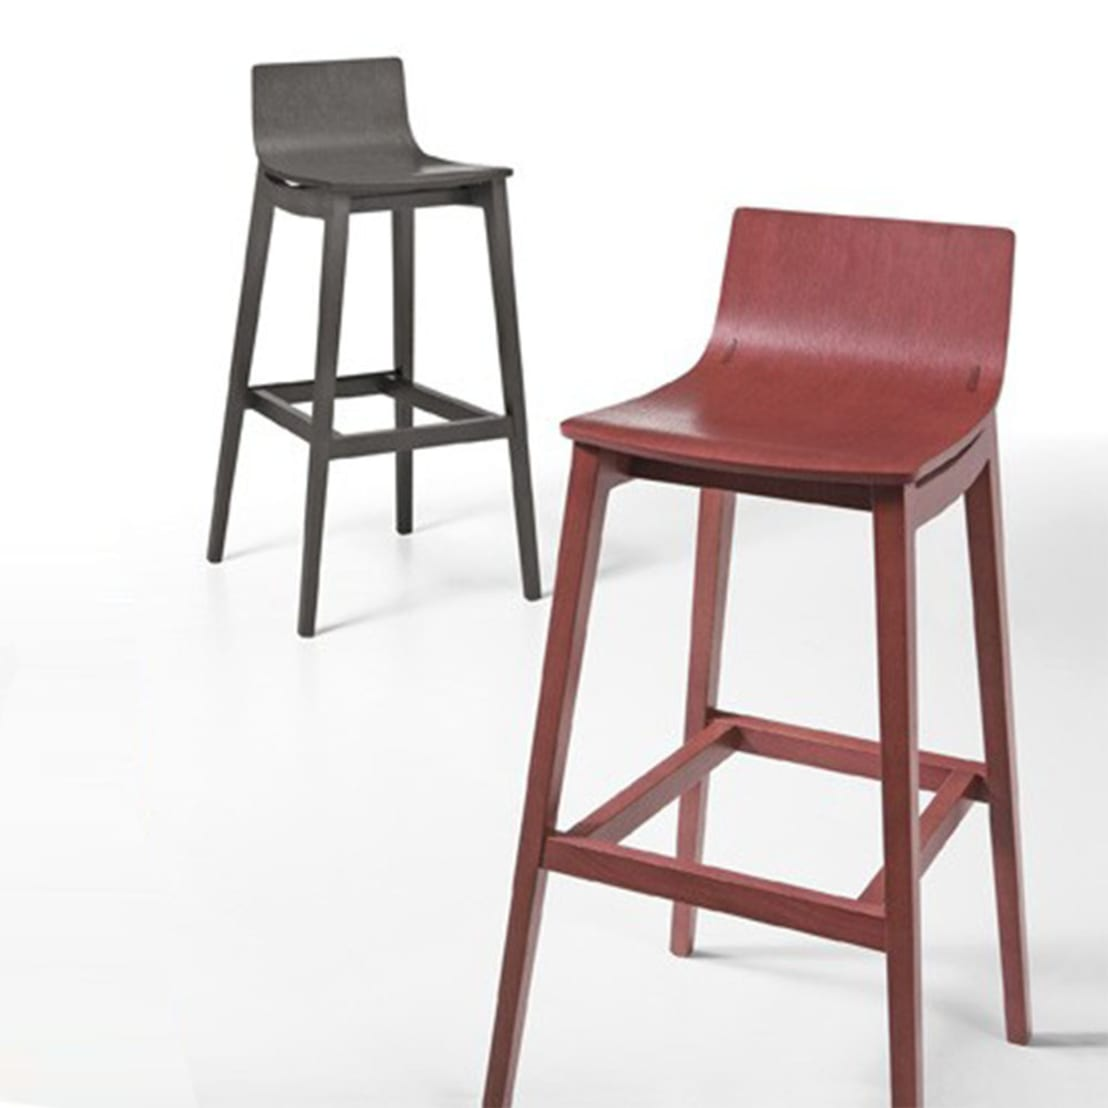 kitchen bar stools kitchen amp bar stools by my italian living homify 11369